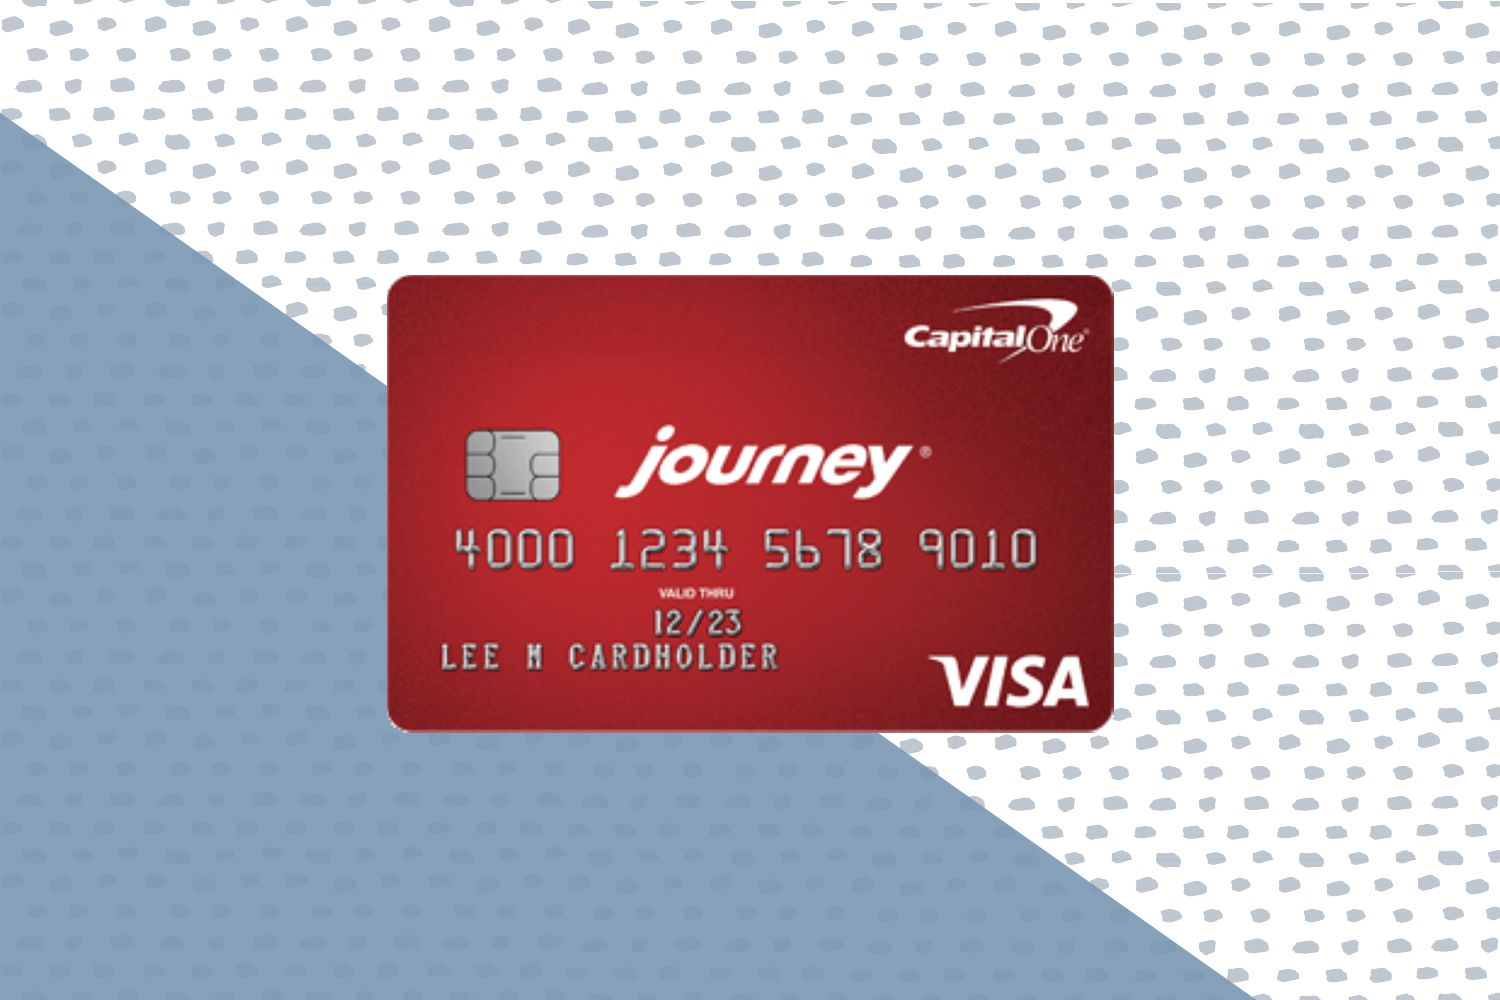 Journey Student Credit Card from Capital One Review